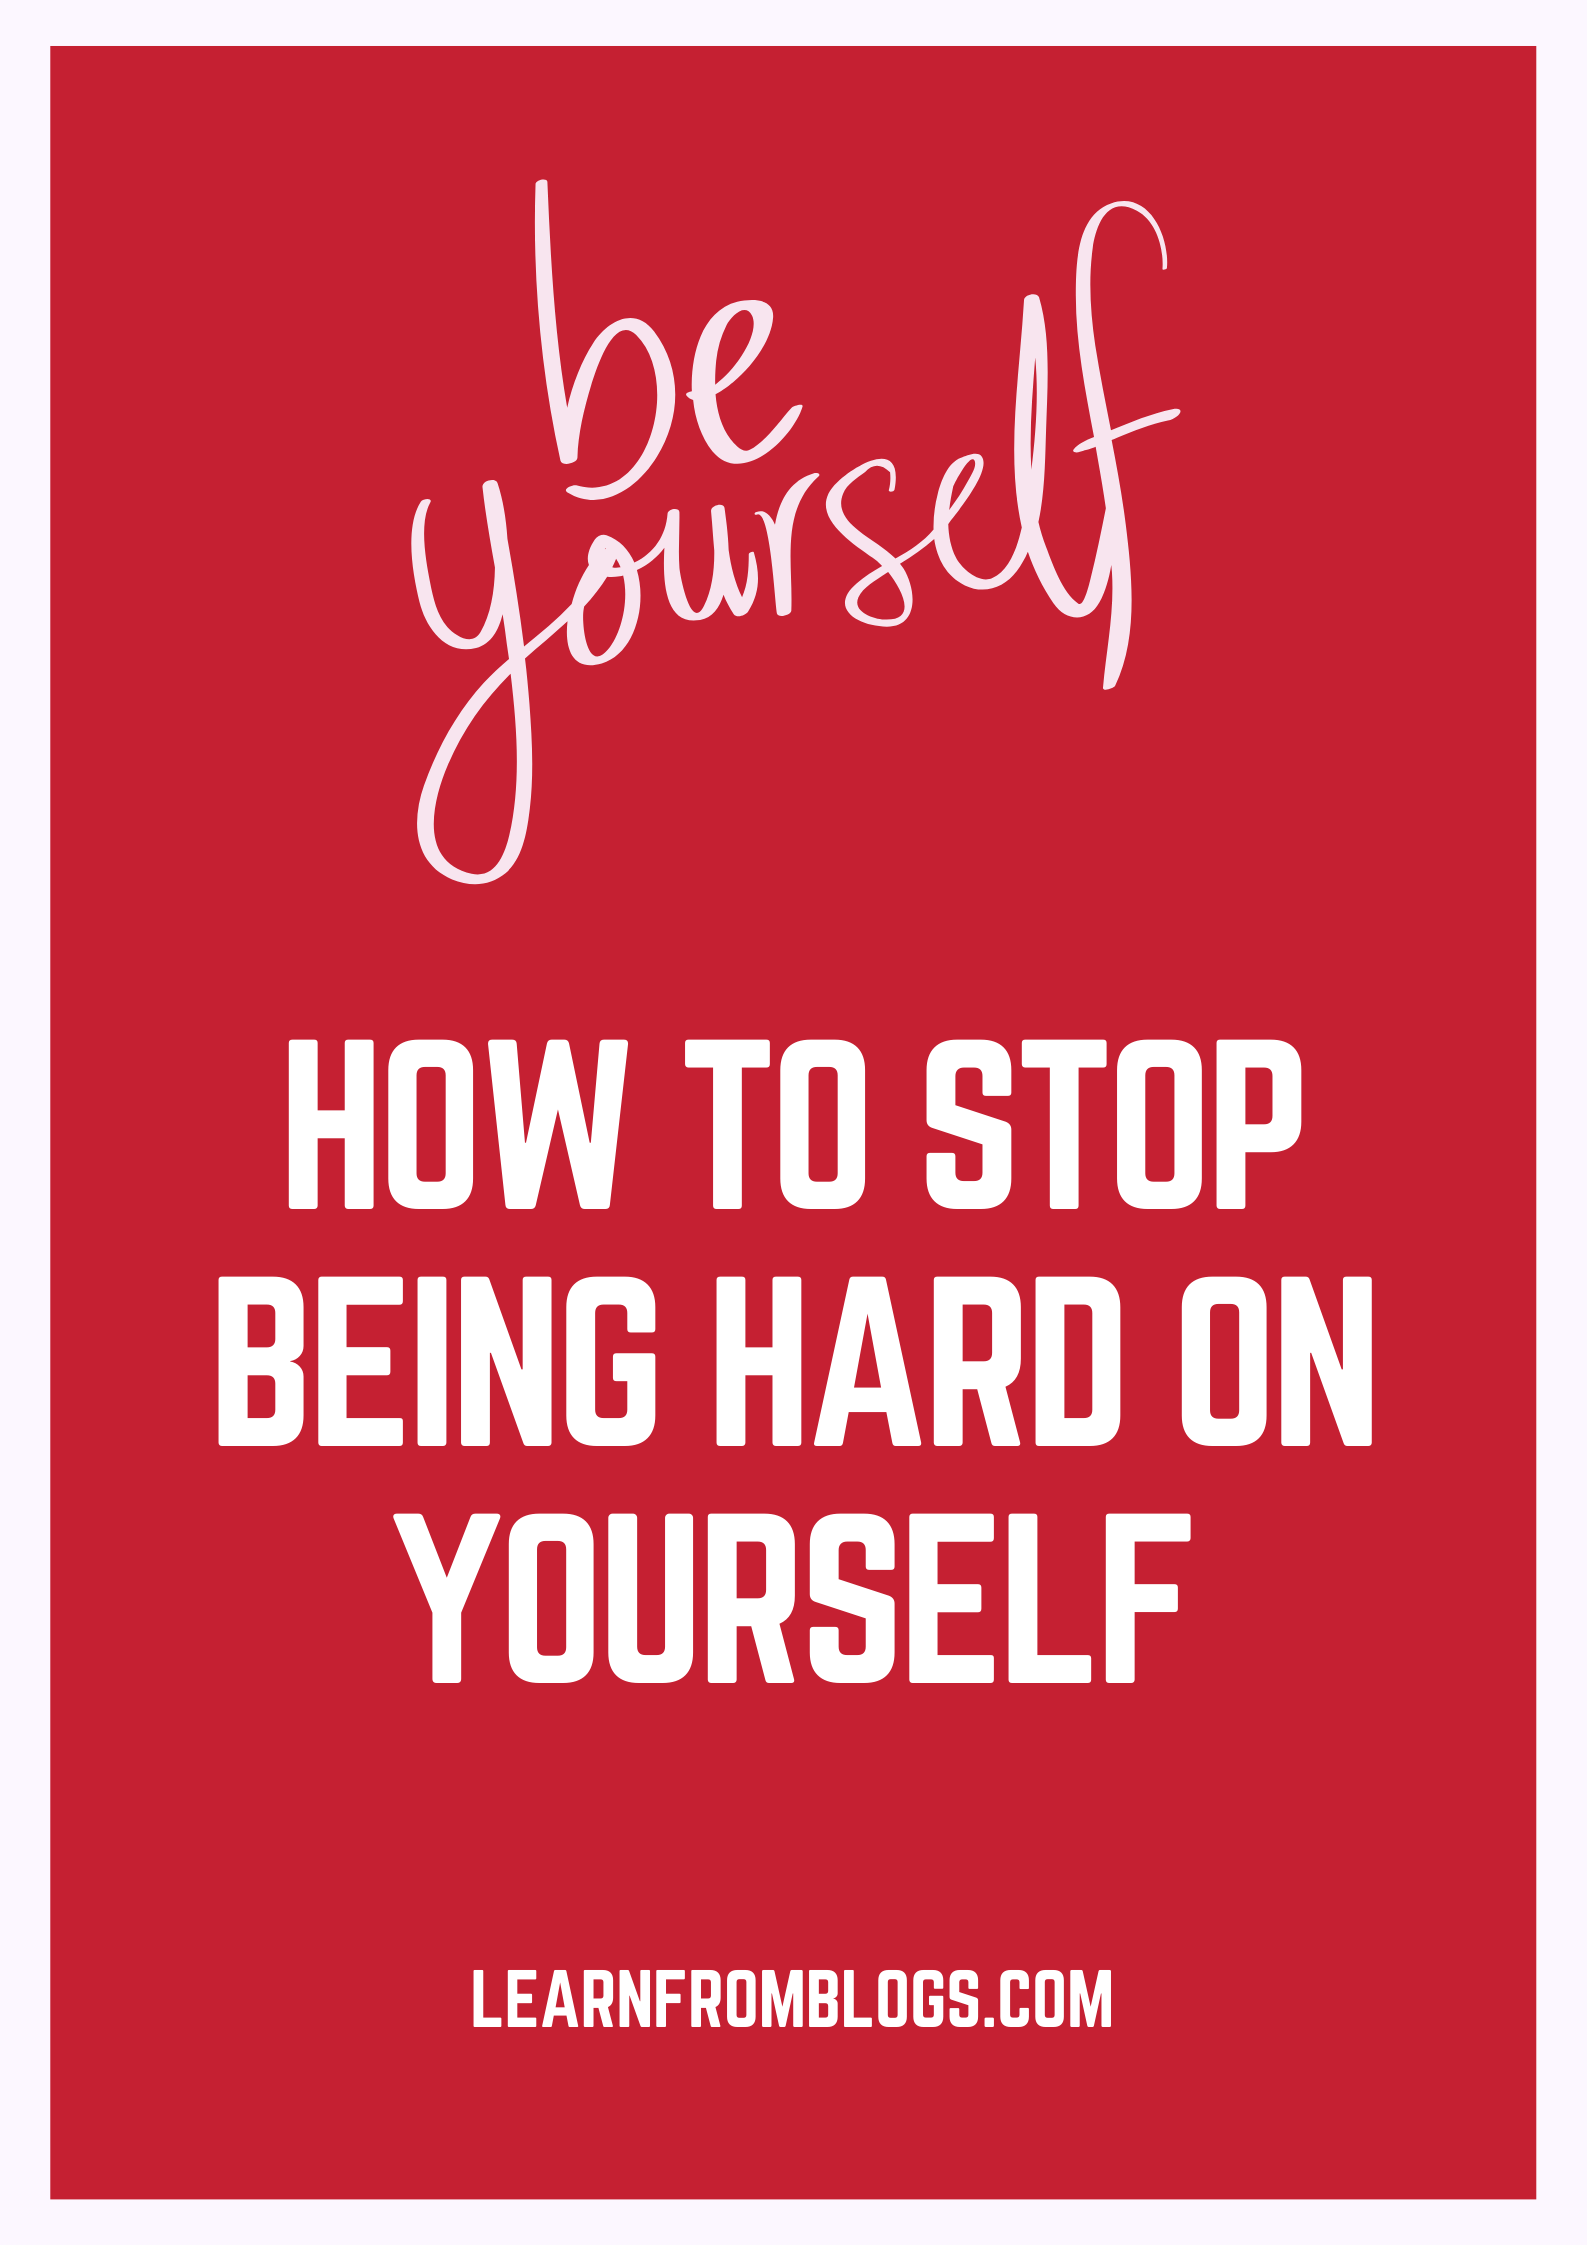 How To Stop Being Hard On Yourself.png